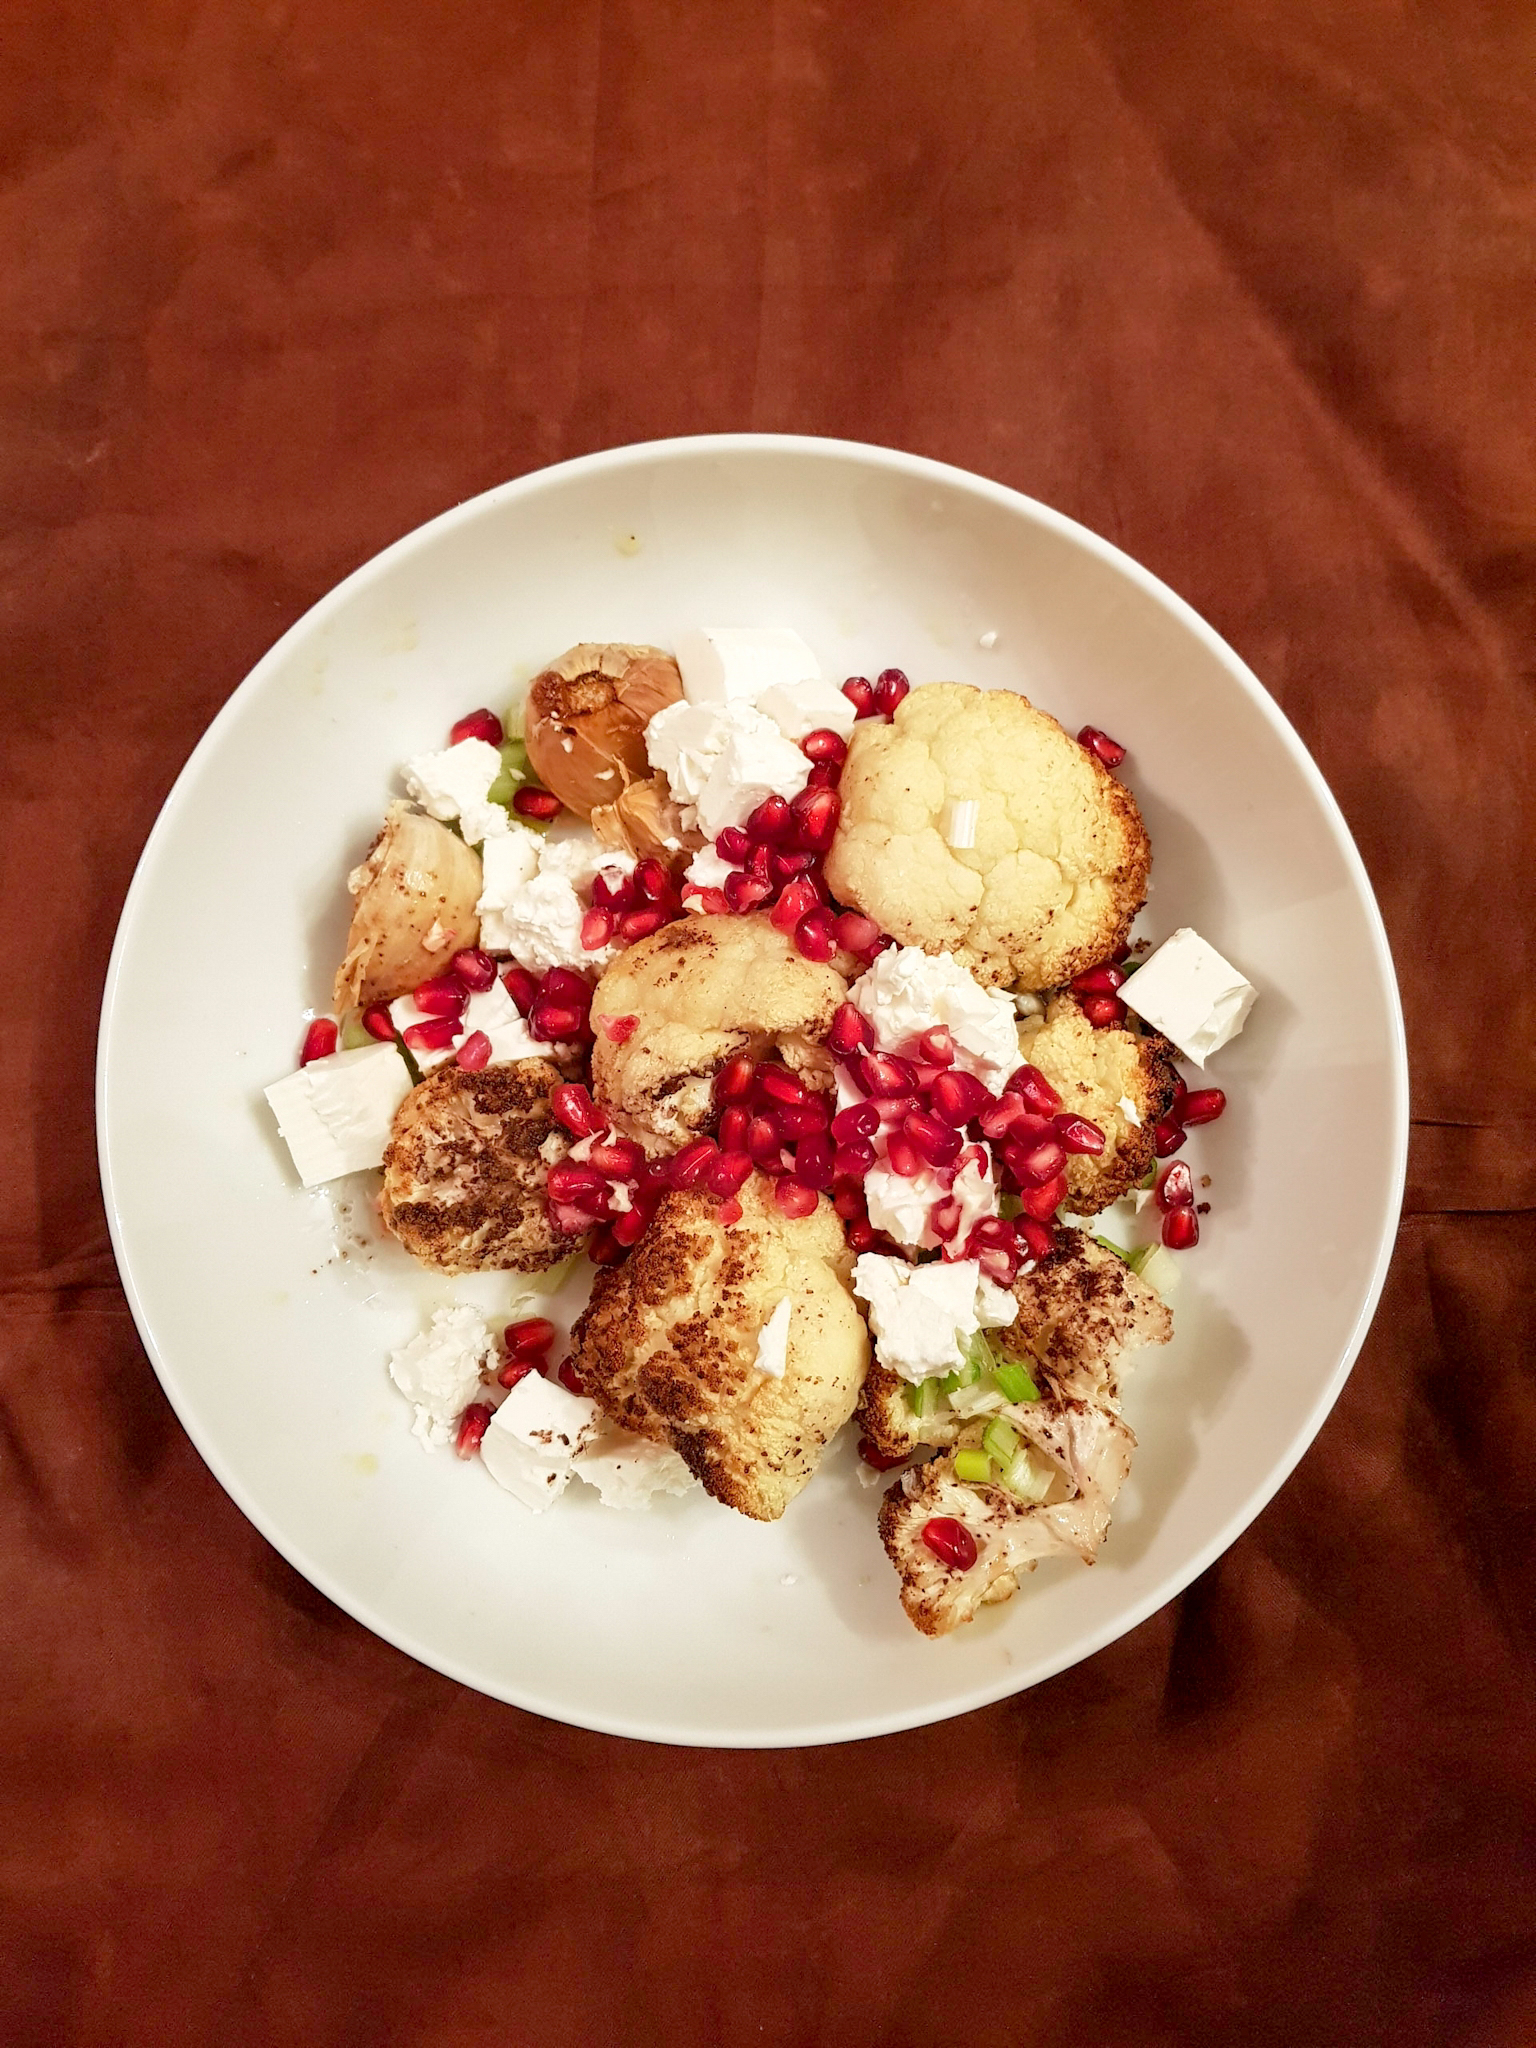 Spiced Roasted Cauliflower With Feta And Pomegranate